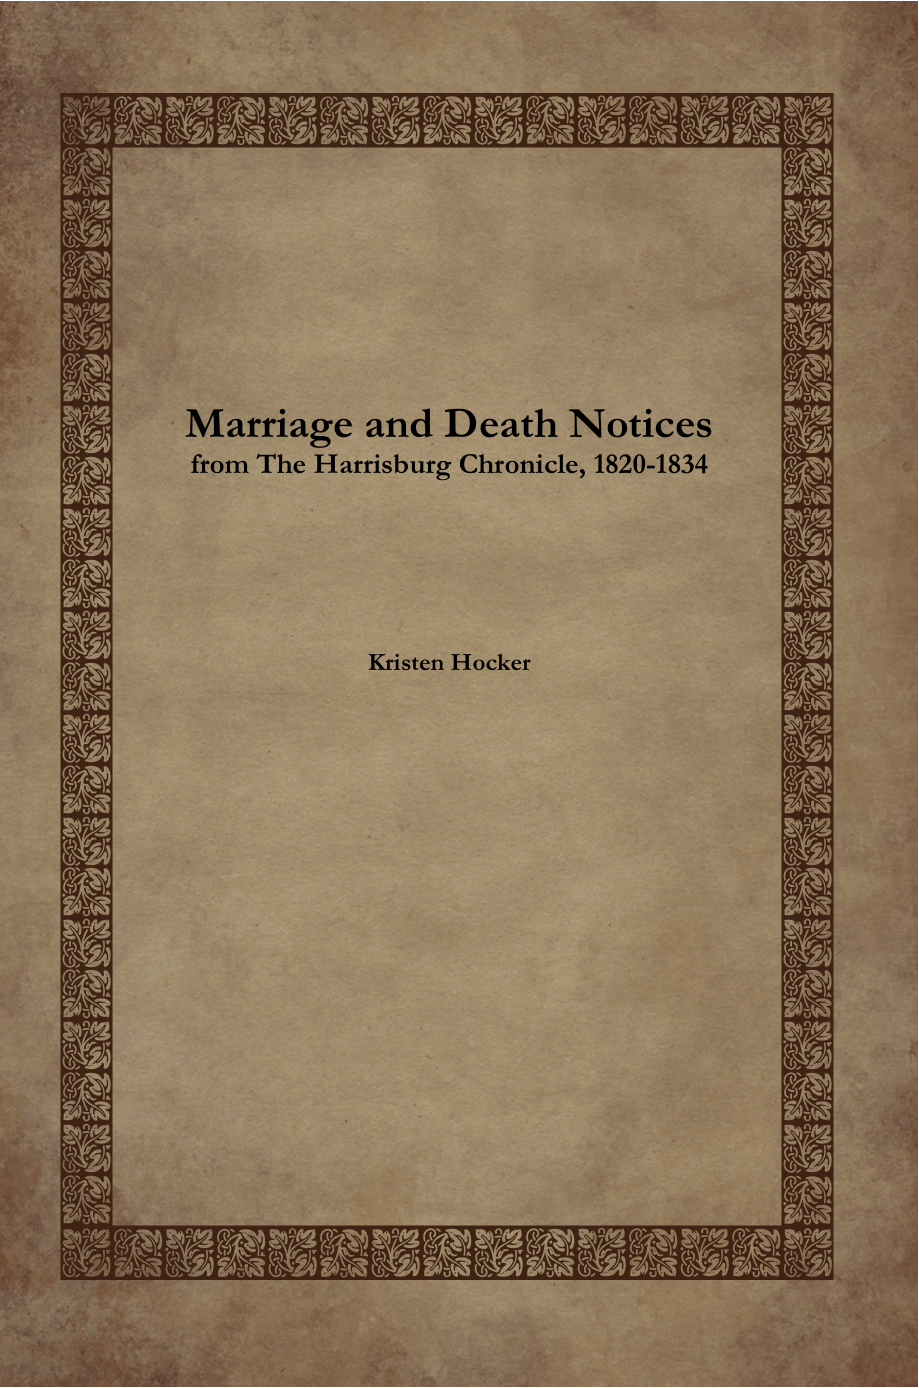 Marriage and Death Notices in the Harrisburg Chronicle, 1820-1834